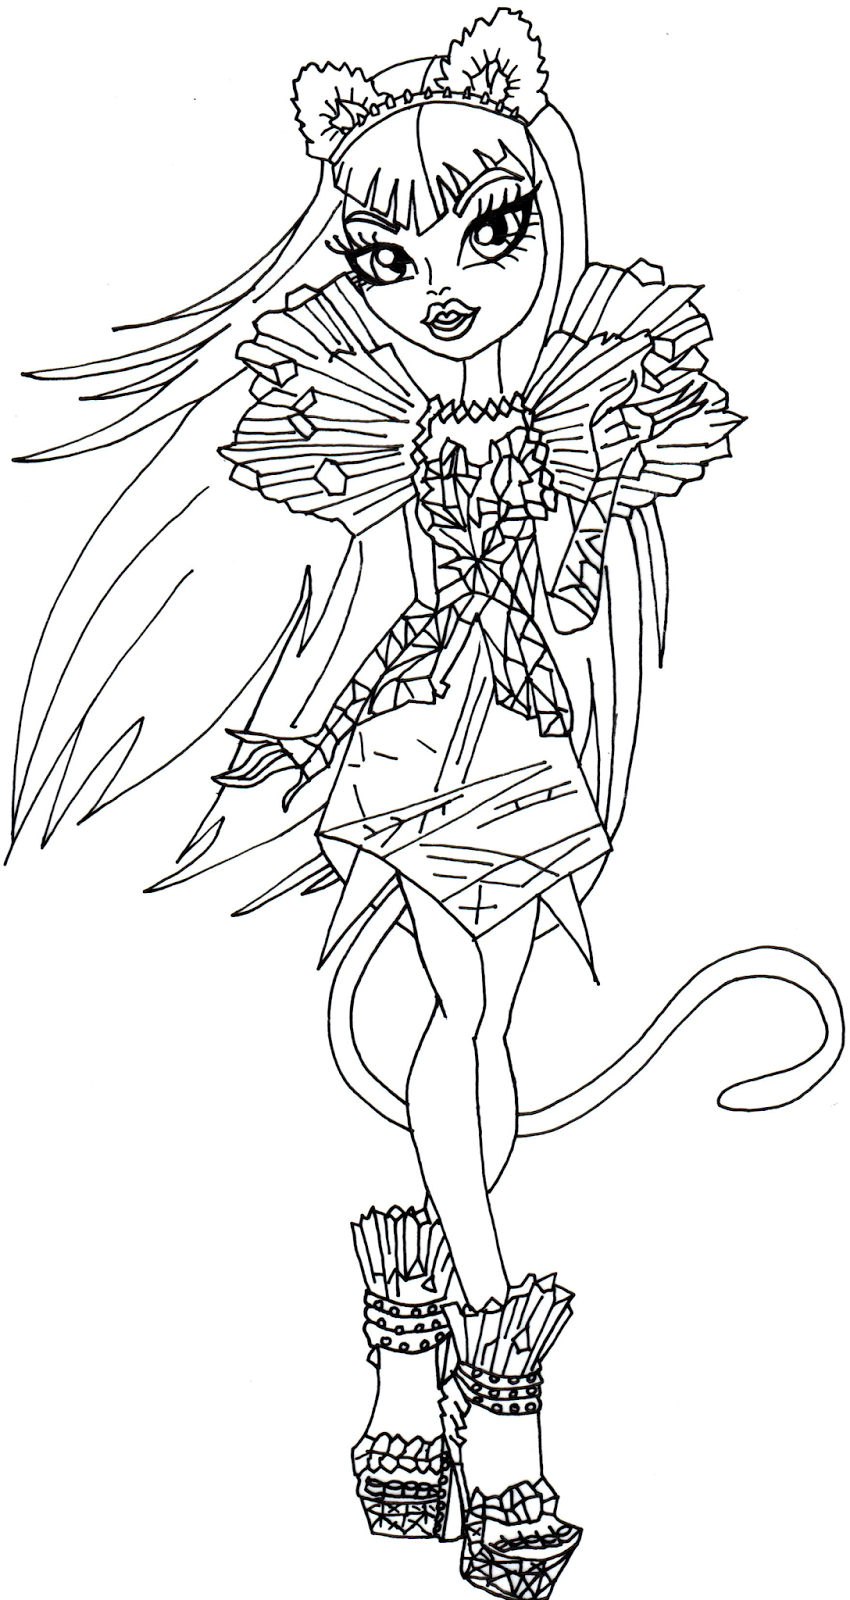 Free Printable Monster High Coloring Page For Catty Noir In Boo York